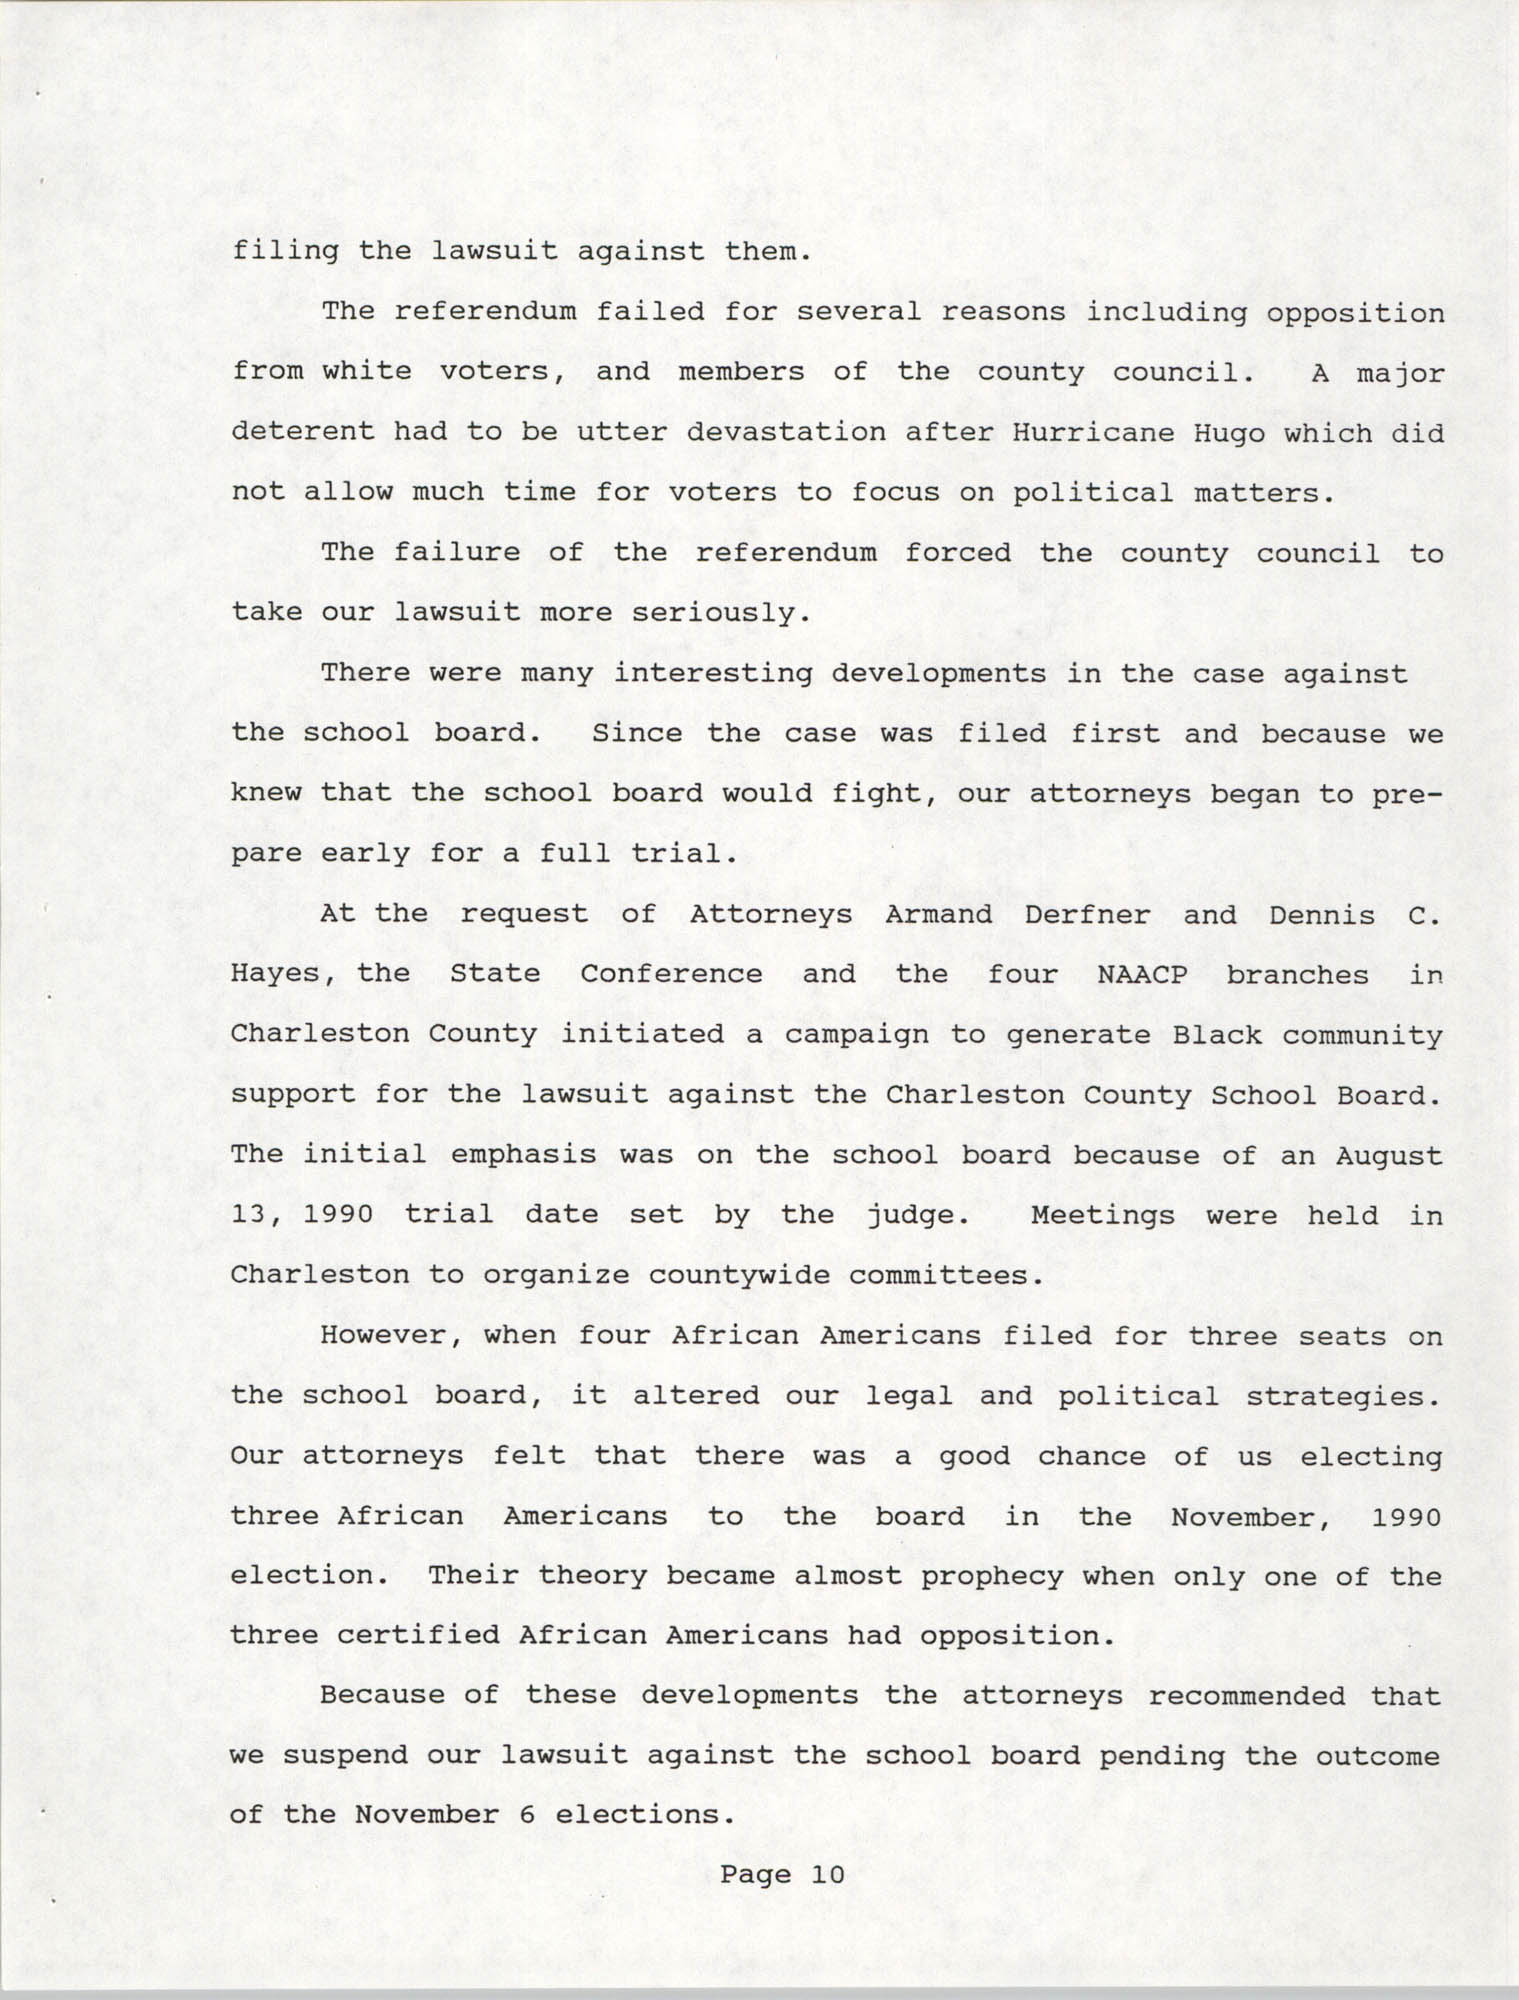 South Carolina Conference of Branches of the NAACP, 1990 Annual Report, Part One, Page 10